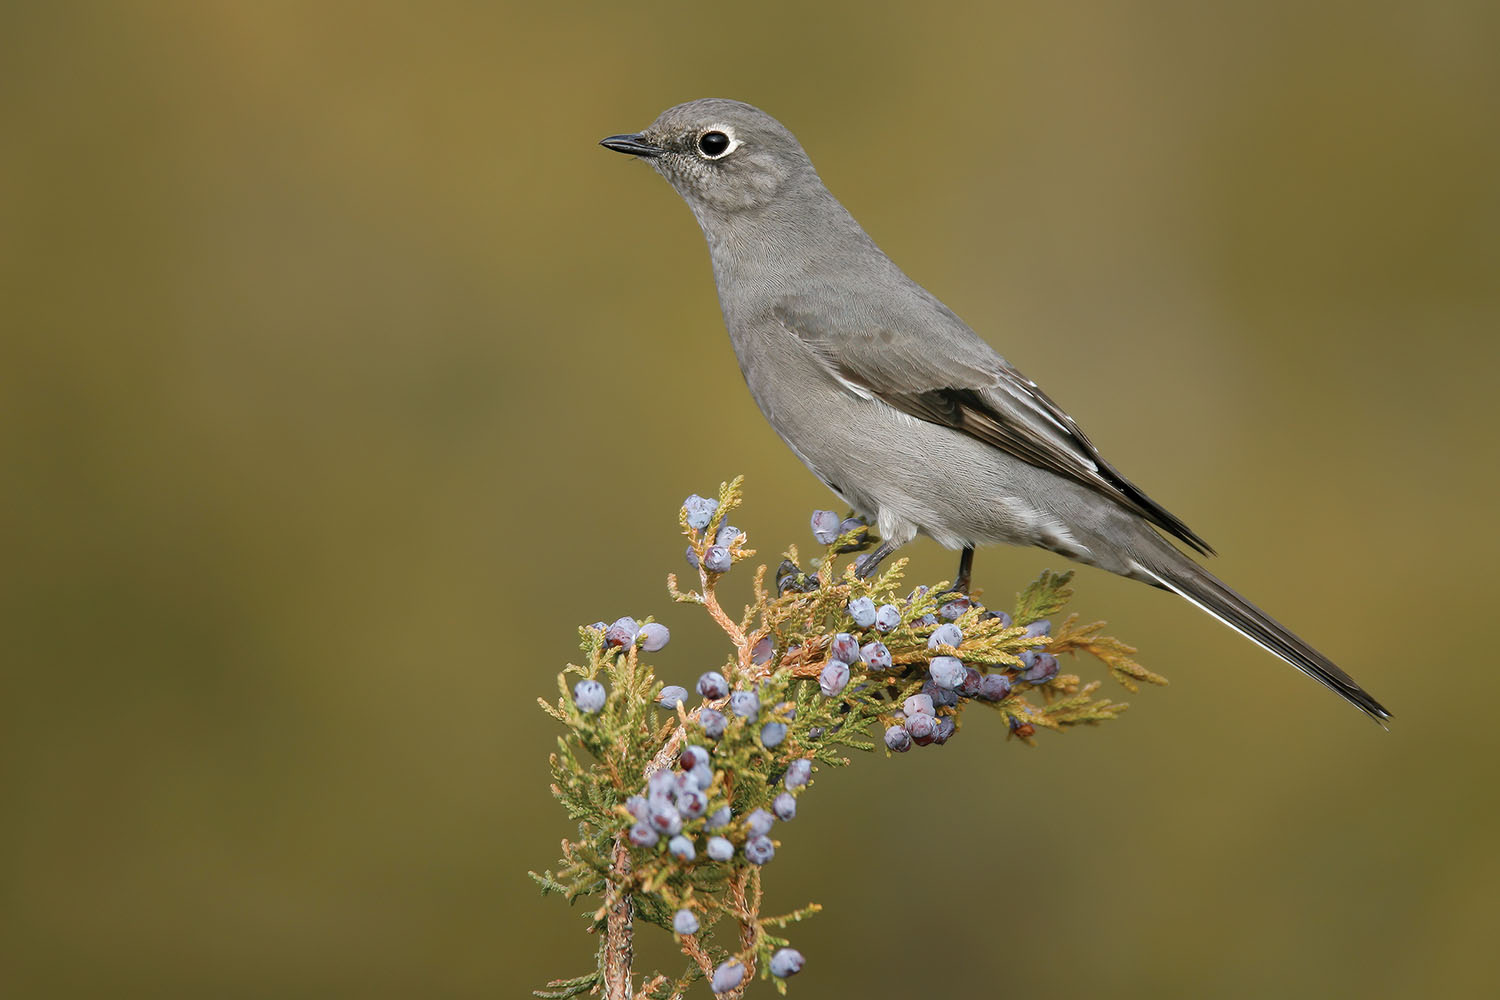 Townsend's Solitaire, adult. December in Los Alamos County, New Mexico. Photo by Brian E. Small